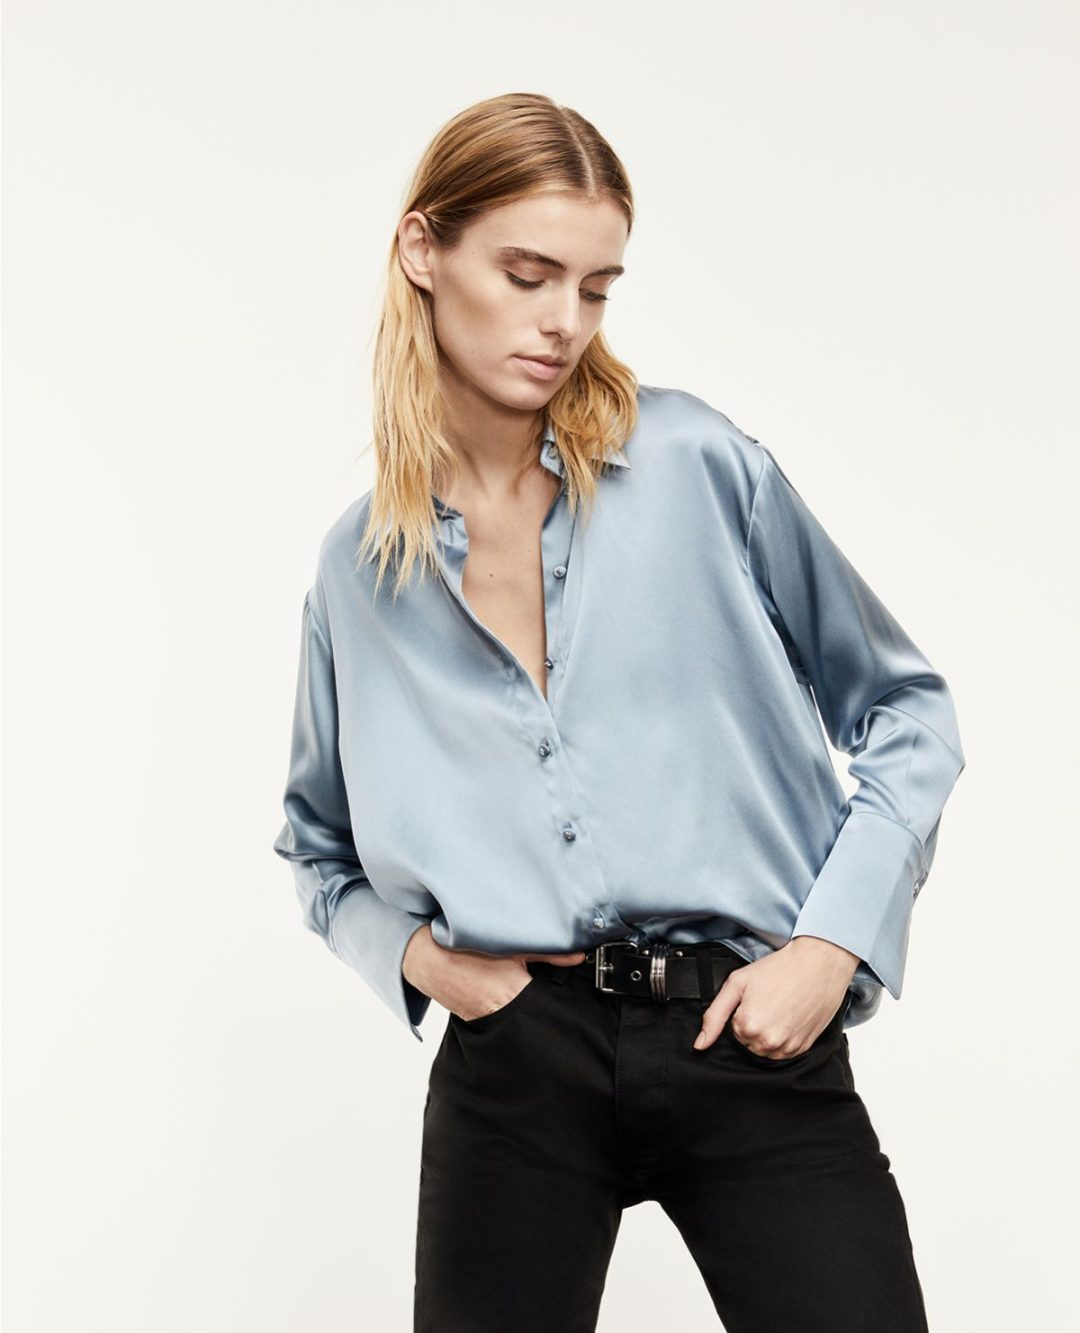 Best Brands Similar To Massimo Dutti: The Kooples